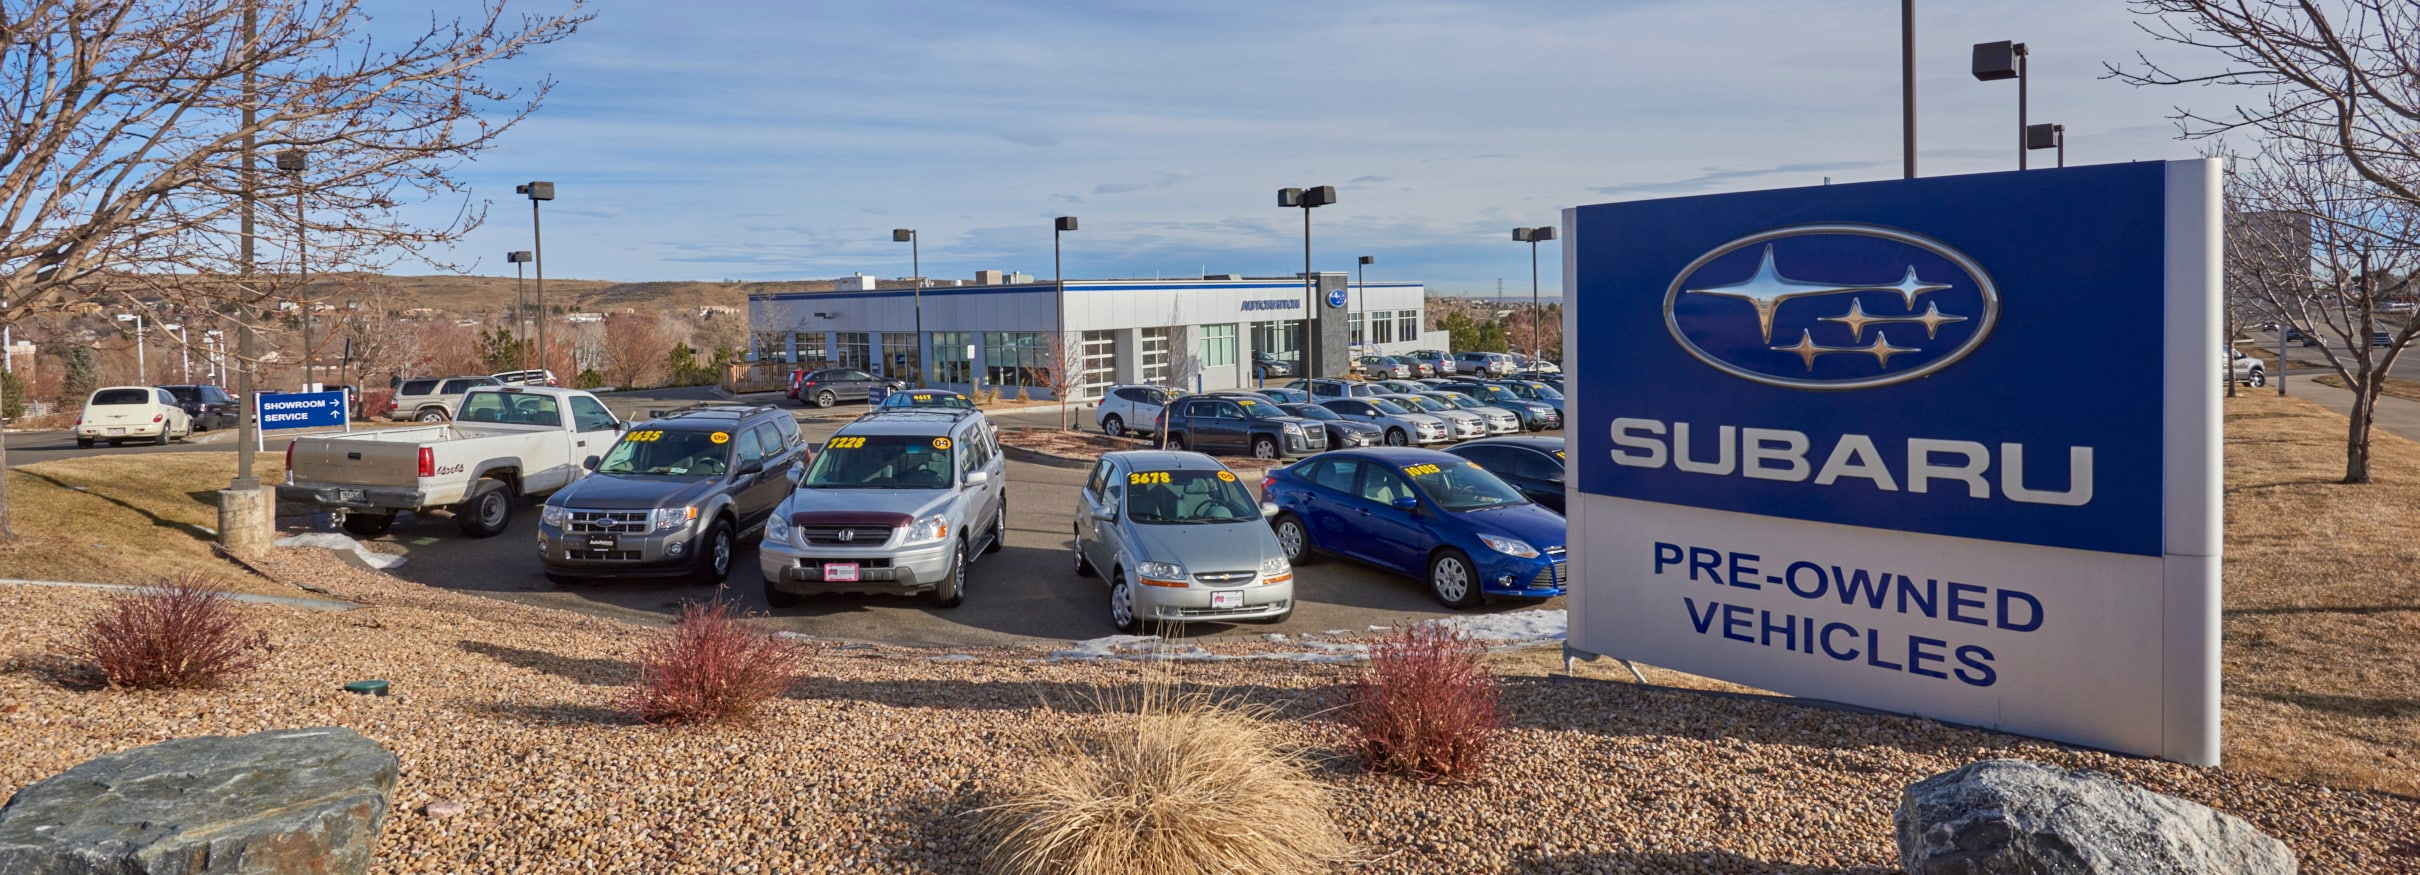 AutoNation Subaru West Dealership Exterior